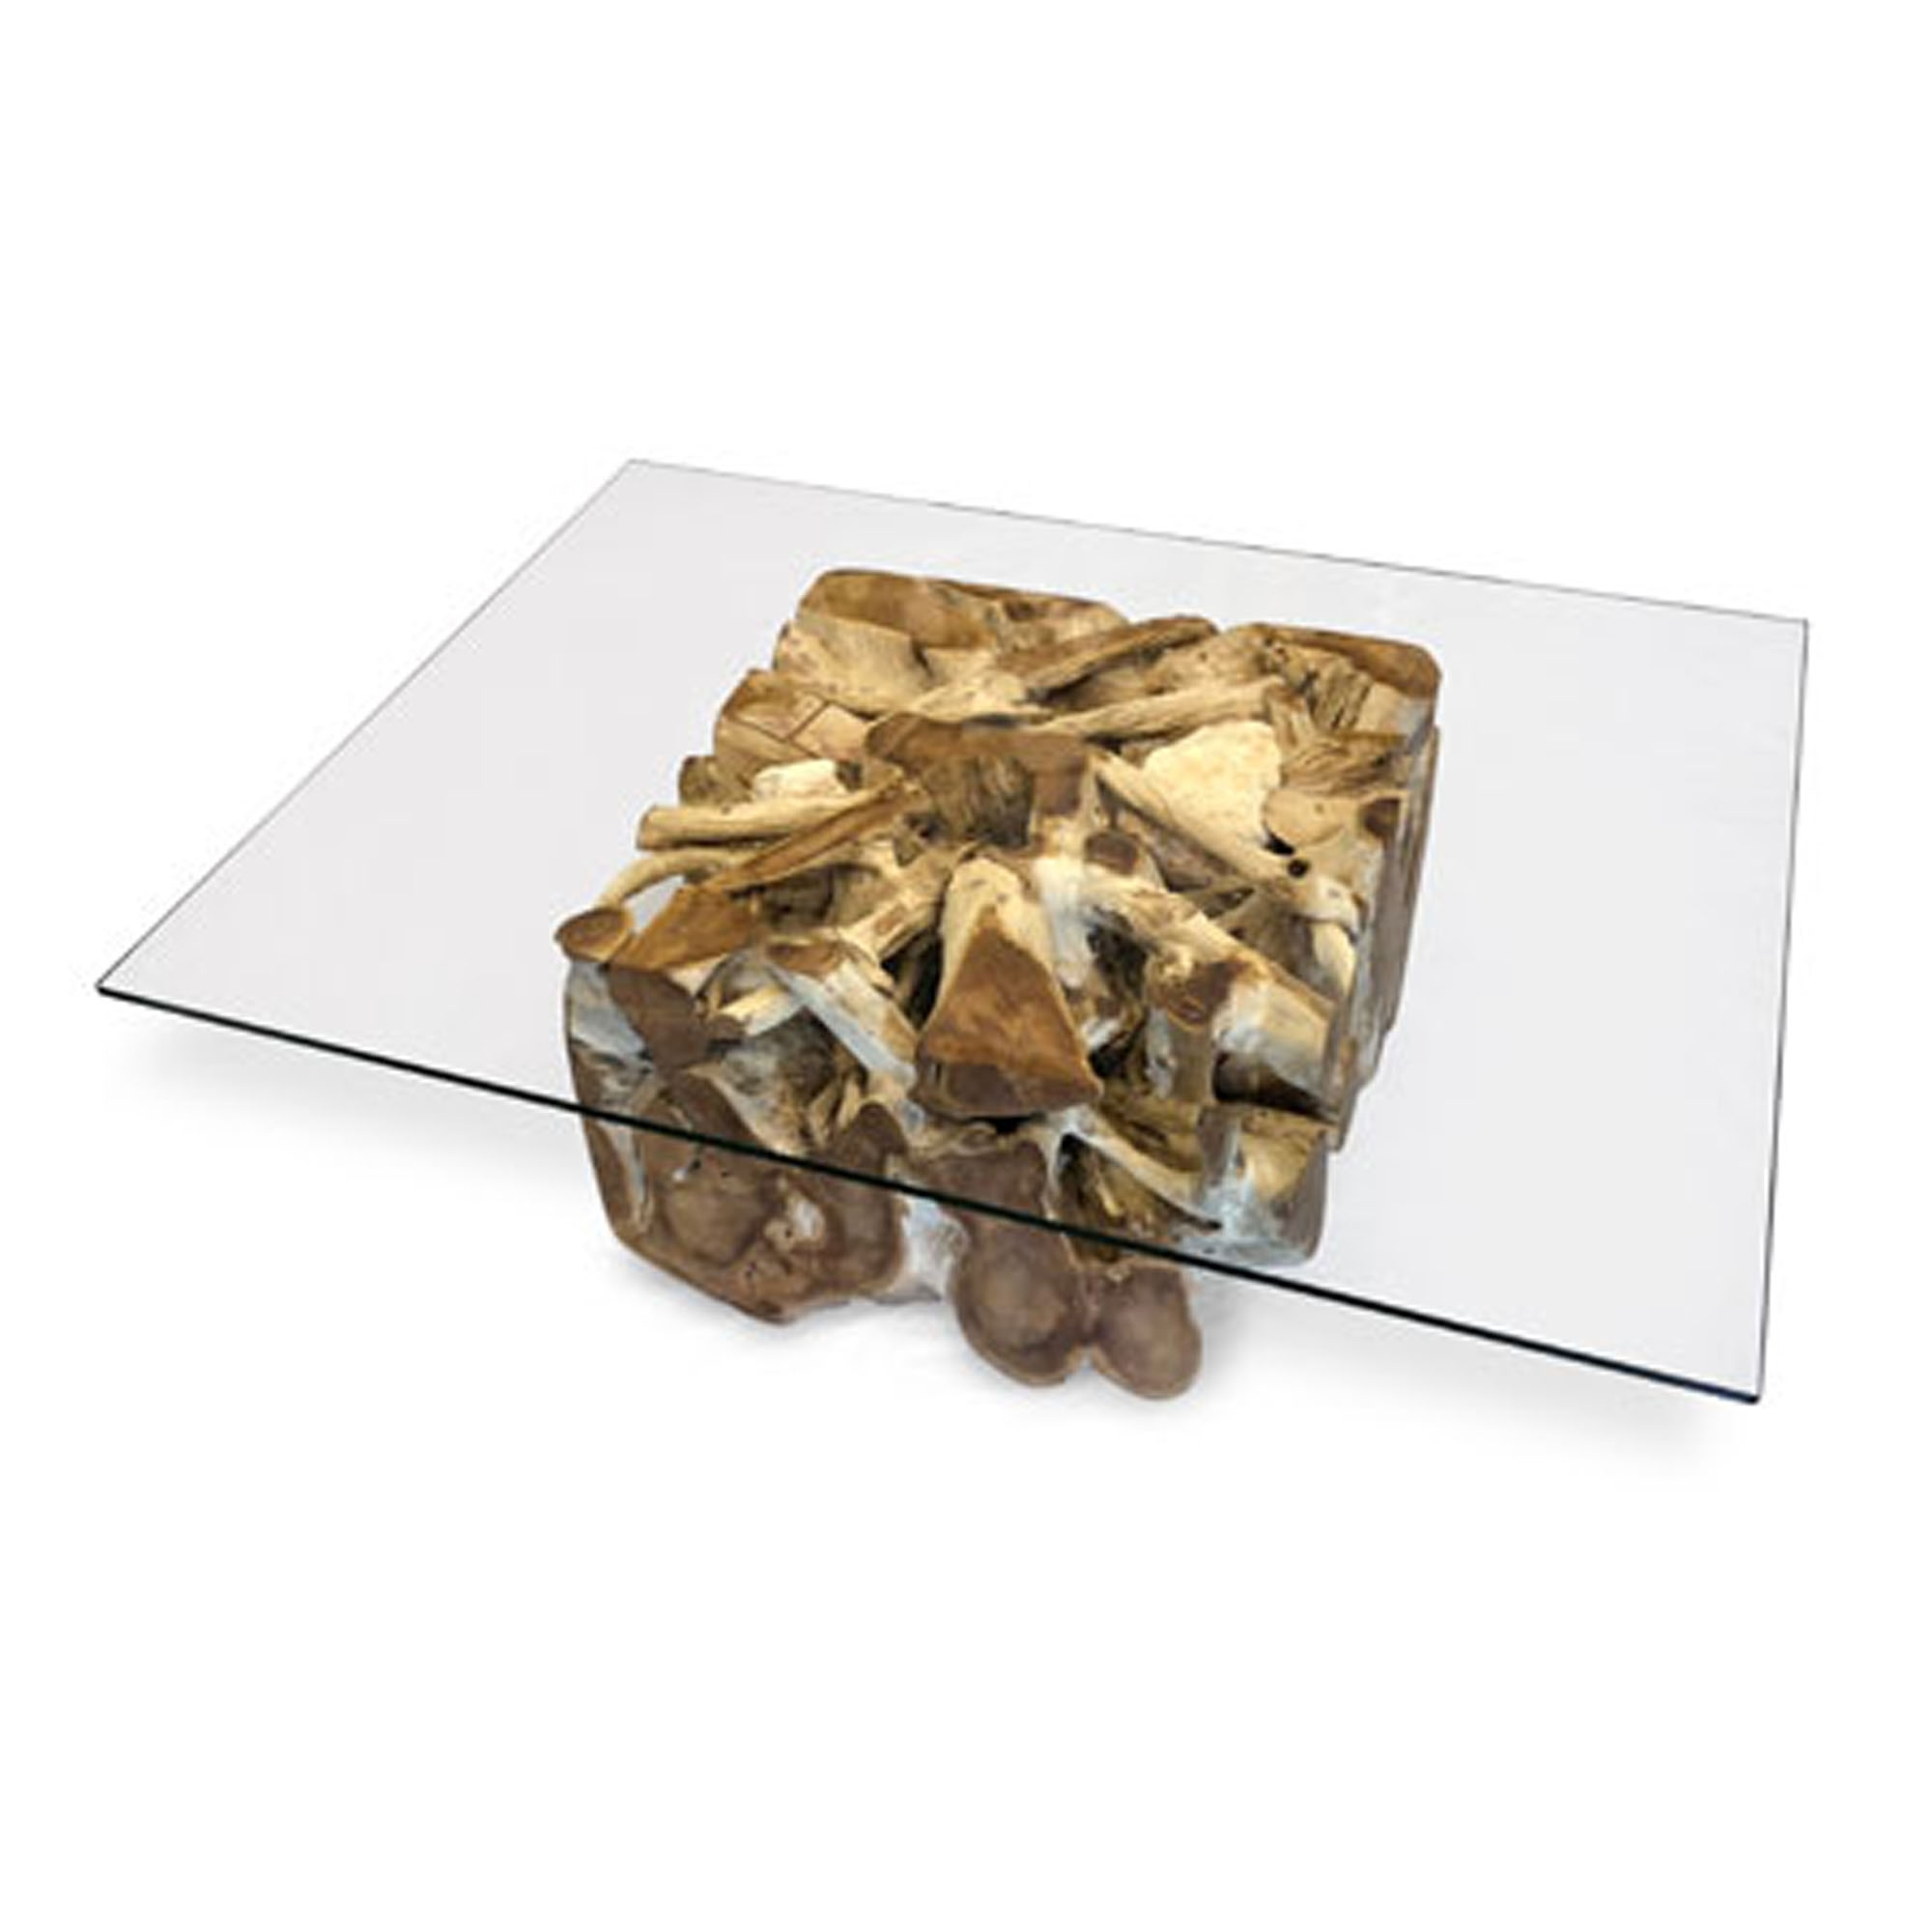 driftwood coffee table teak root spider stone rectangular glass large